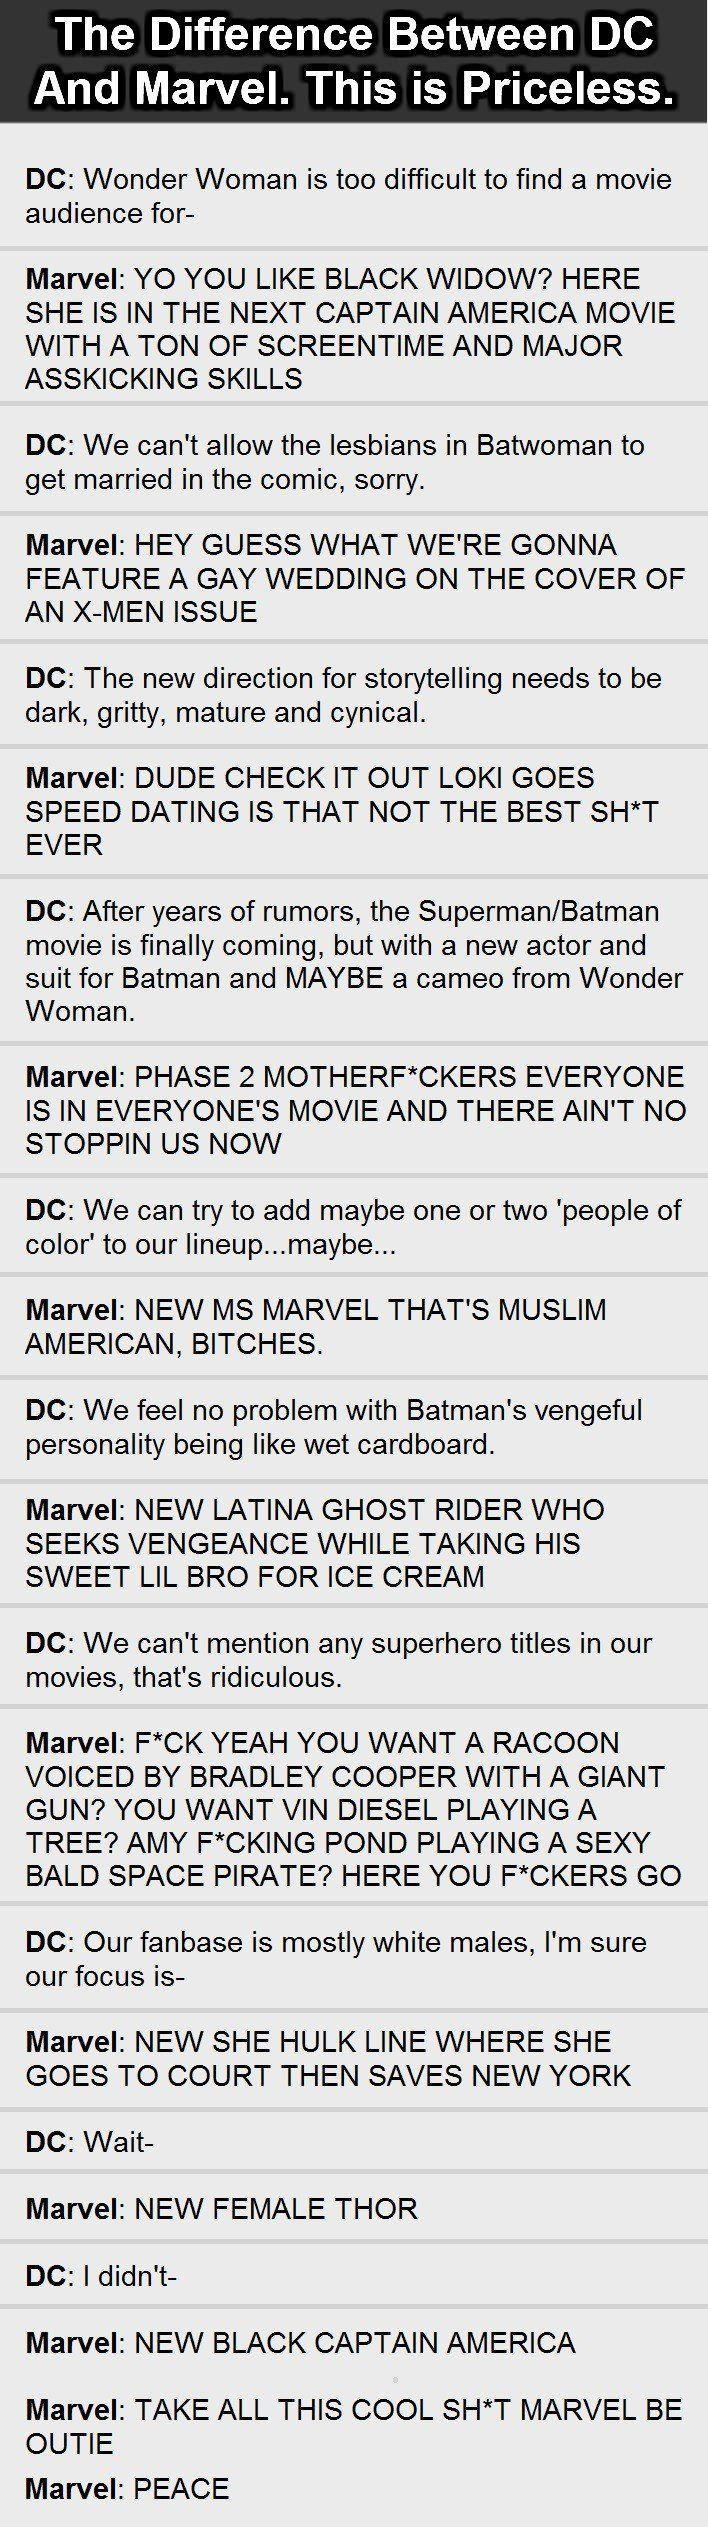 DC beat marvel with a female lead film though. WW smashed it and still no black widow movie